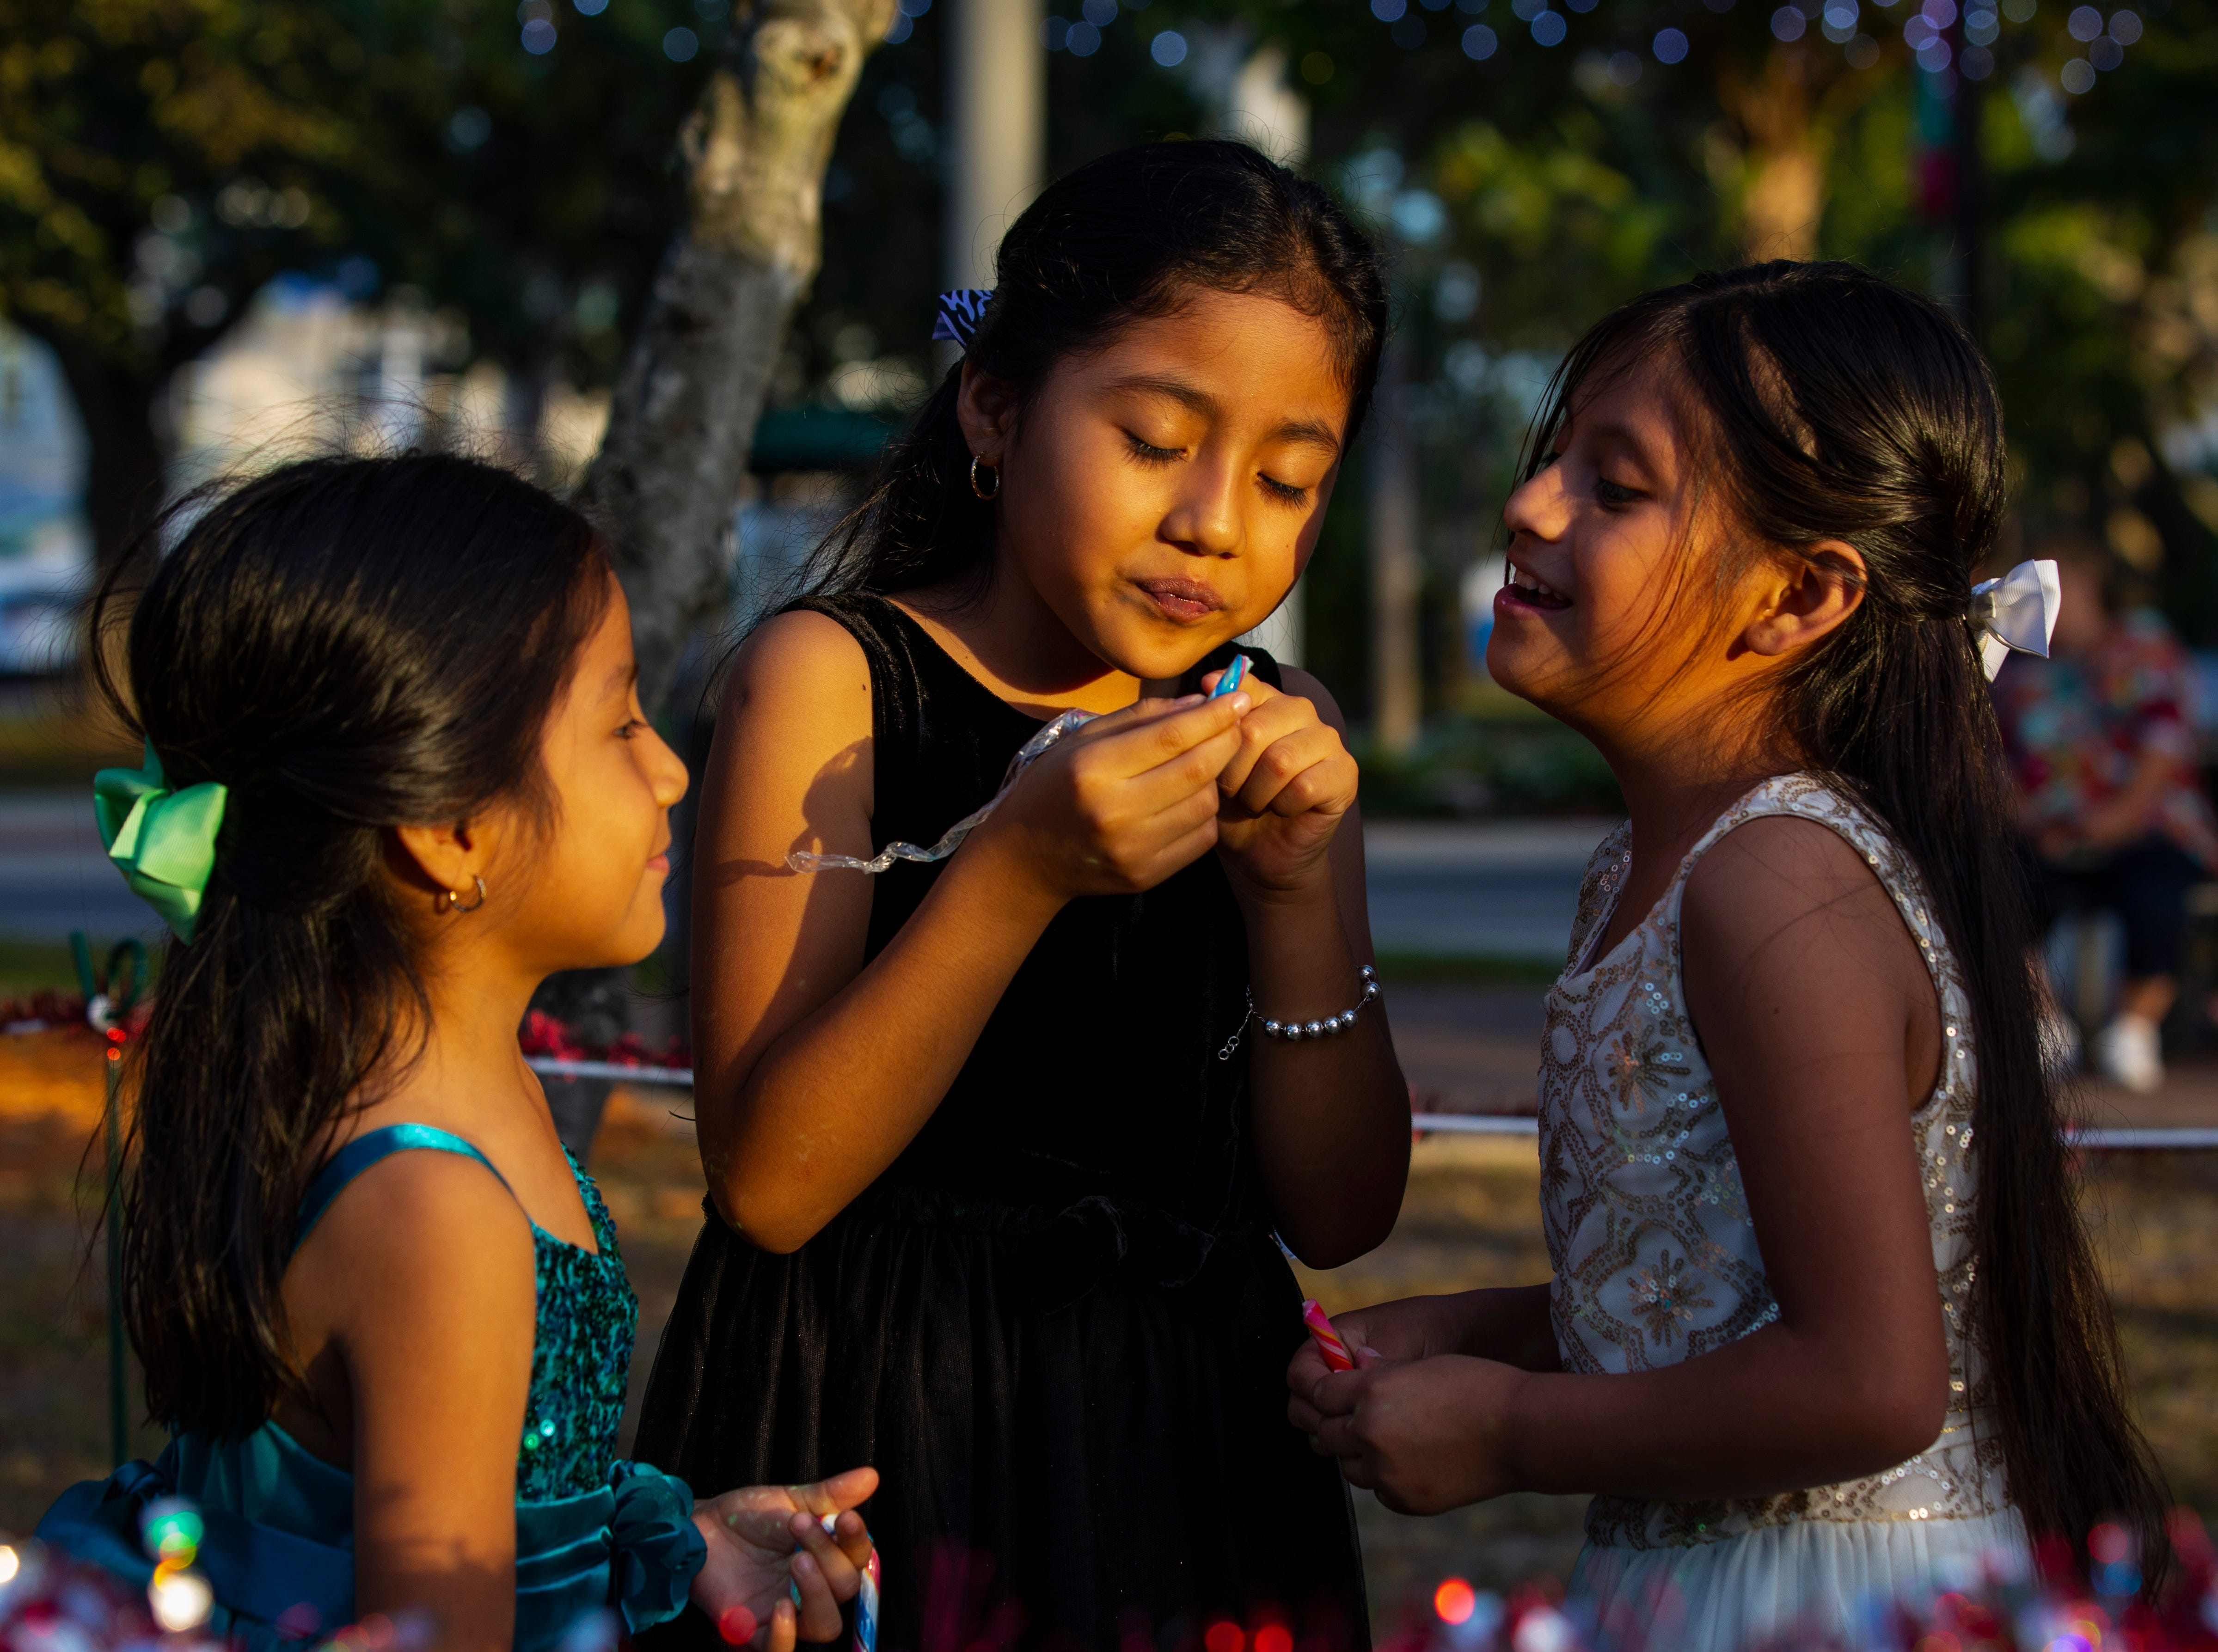 From the left, Alejandra Diaz, 5, Ellen Diaz, 8, and Maria Martin, 5, share a moment while waiting in line to meet Santa at Mrs. Claus during the 19th annual Holiday in the Park on Dec. 4, 2018 at the Riverside Park in Bonita Springs.